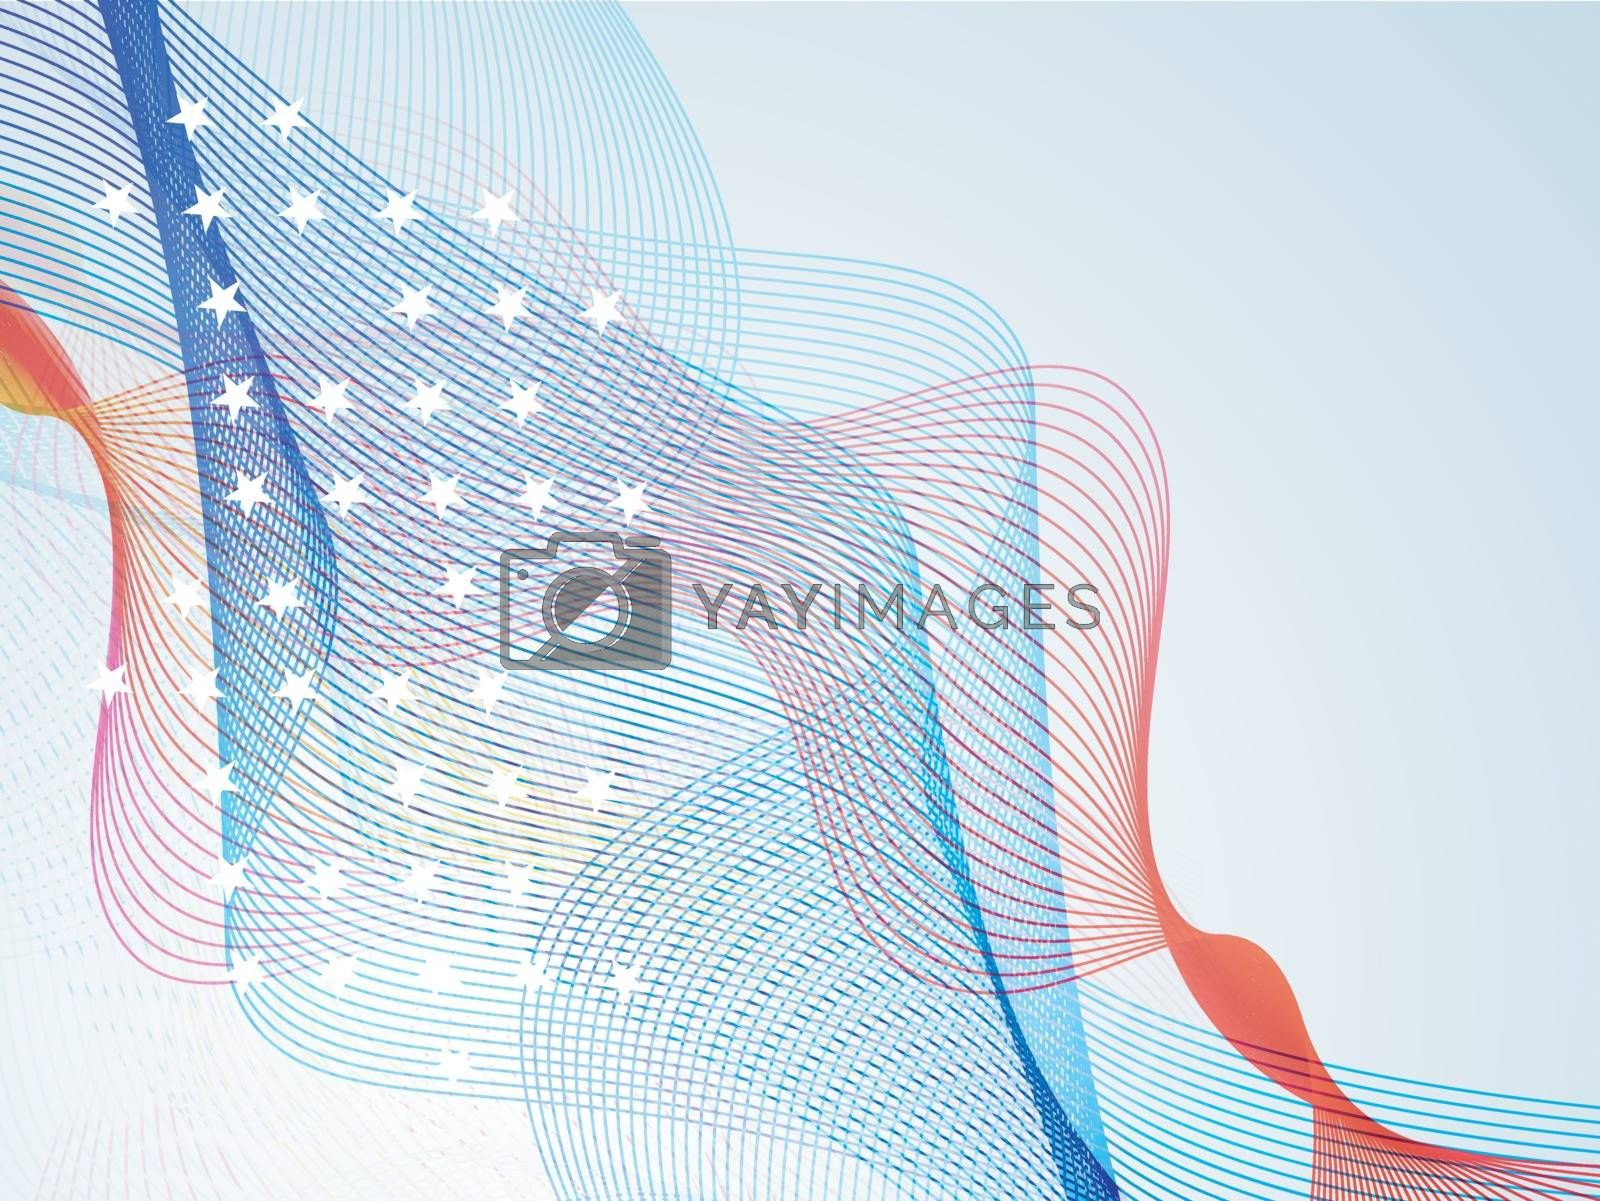 Abstract waves in American Flag colors, Creative background for 4th of July, Independence Day celebration.